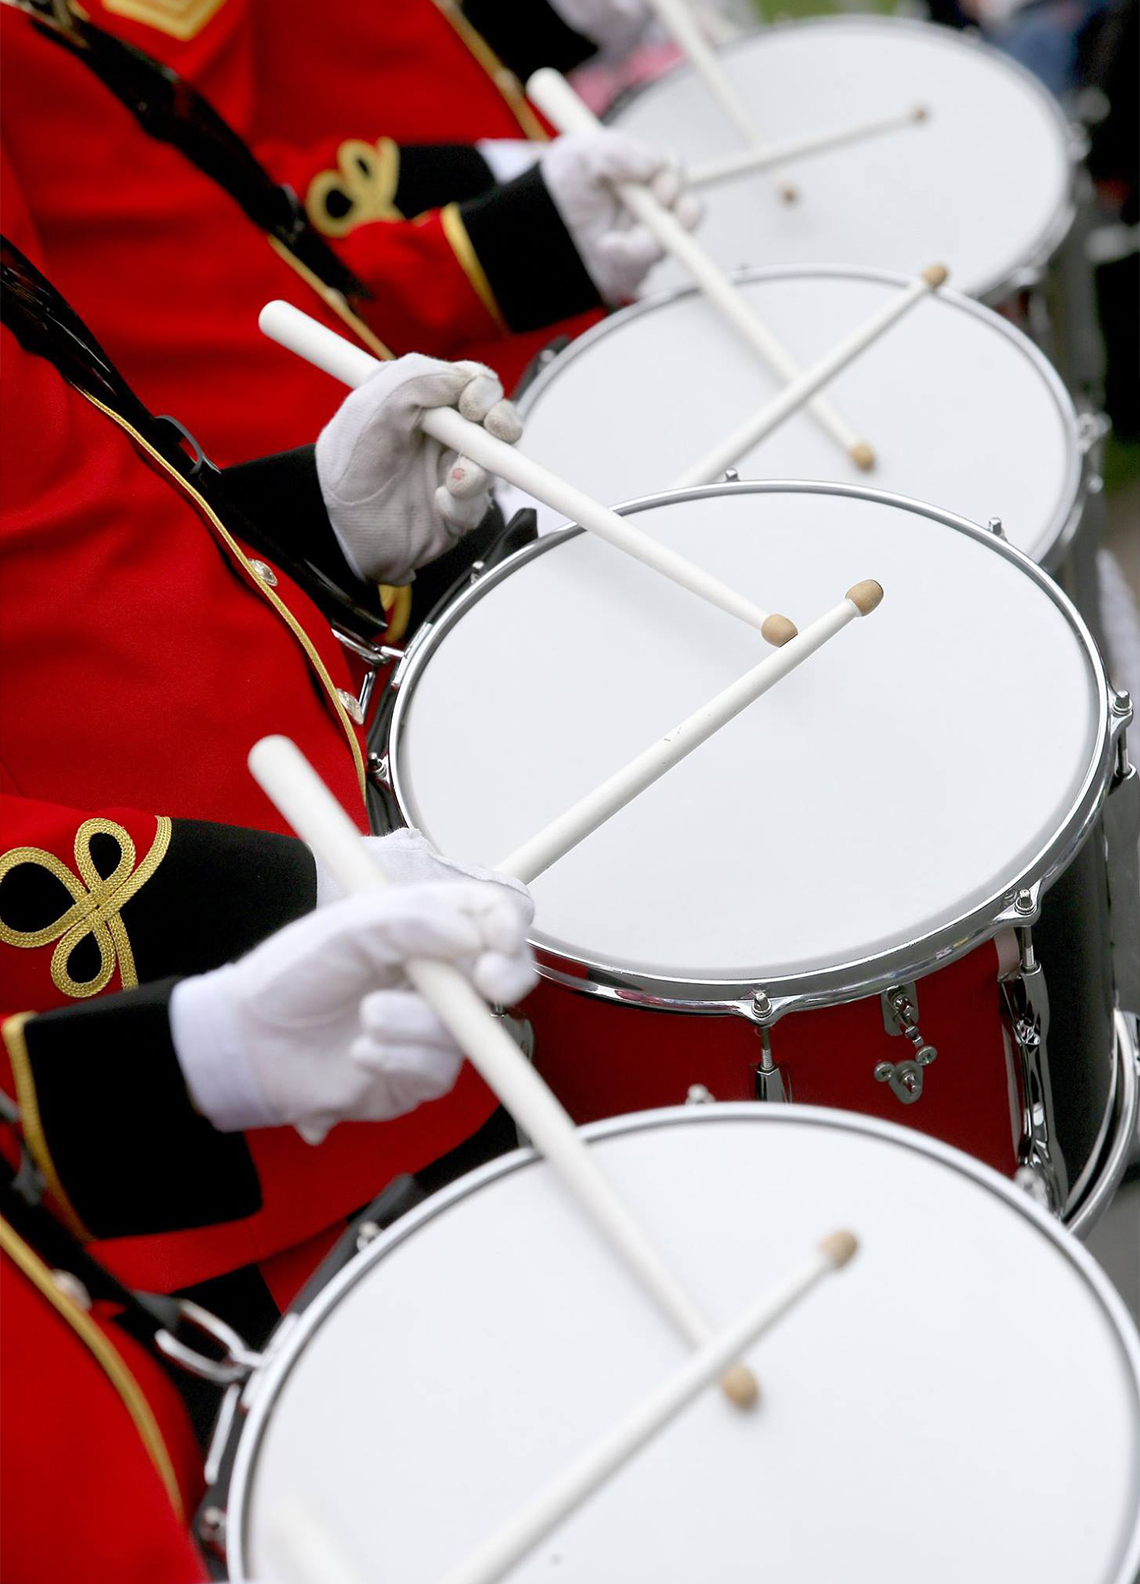 LBW is a most unique event. The city is considered to be the cultural home of marching bands and our performances such as The London Tattoo - held at London's Royal Victoria Dock - will enable participants to showcase their talents in a way that acknowledges the arts, heritage and culture that the UK is well known for.